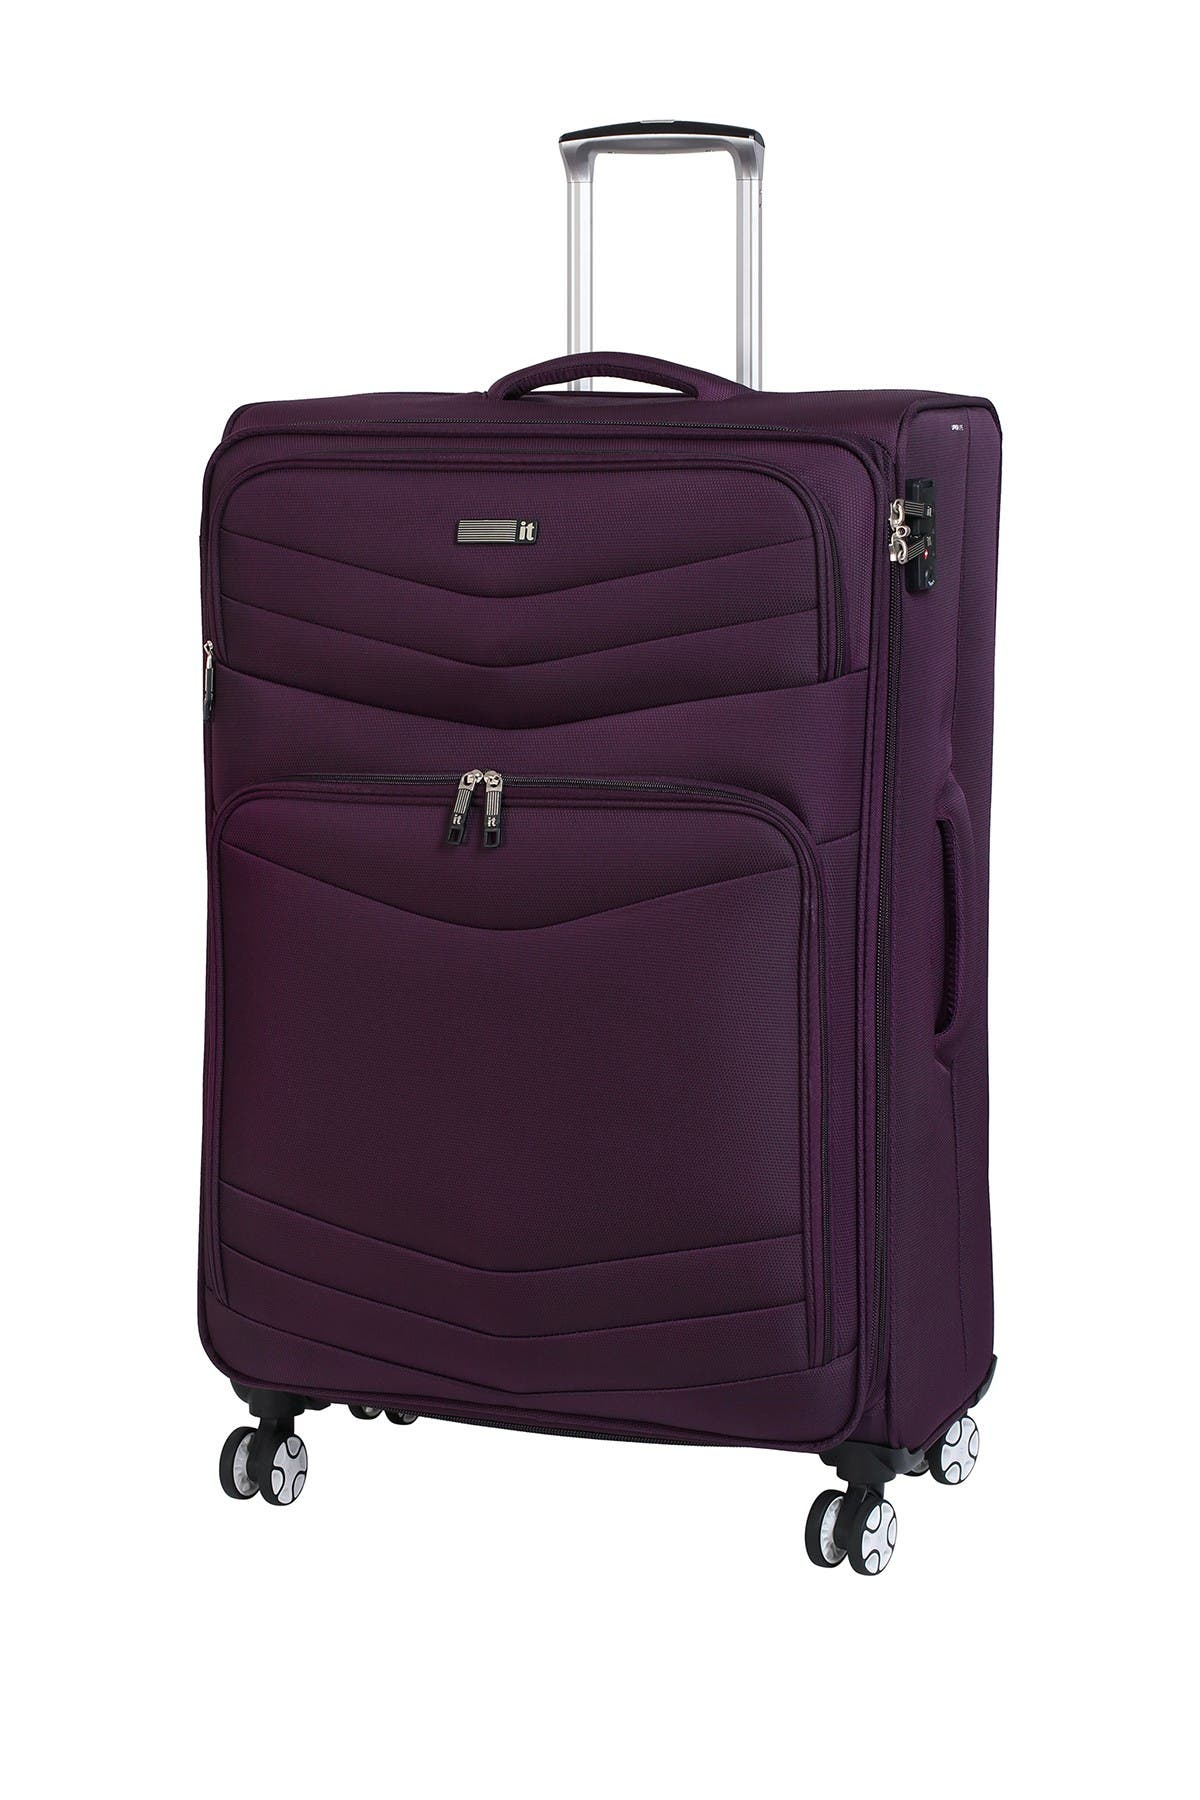 """Image of it luggage Potent Purple 31.7"""" Intrepid 8 Wheel with Expander"""